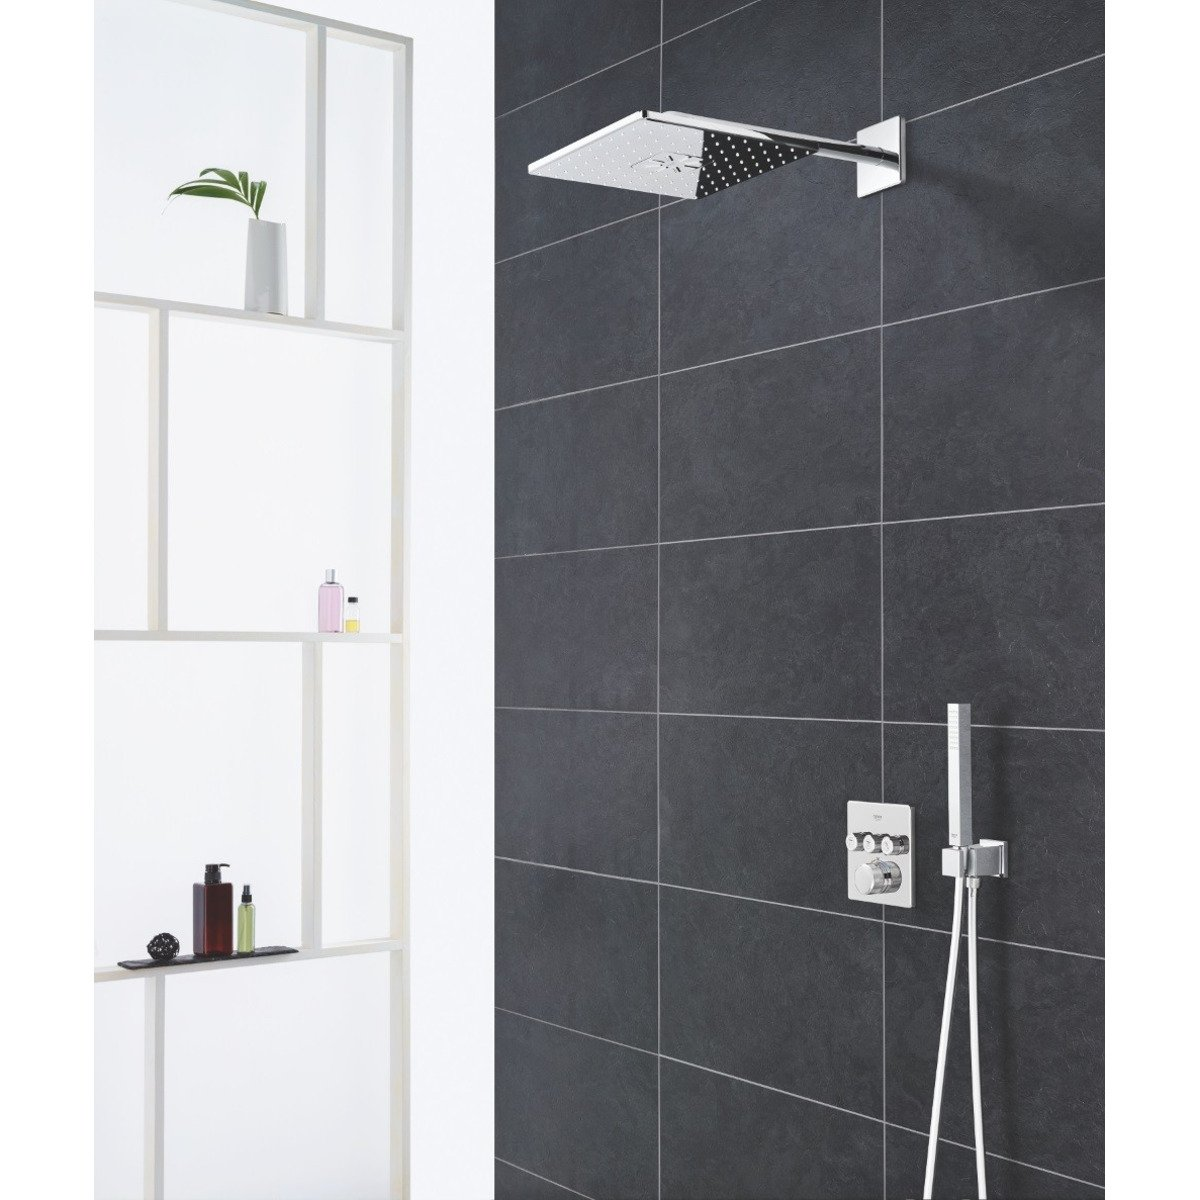 grohe grohtherm smartcontrol set de douche thermostatique rectangulaire avec douche de t te et. Black Bedroom Furniture Sets. Home Design Ideas